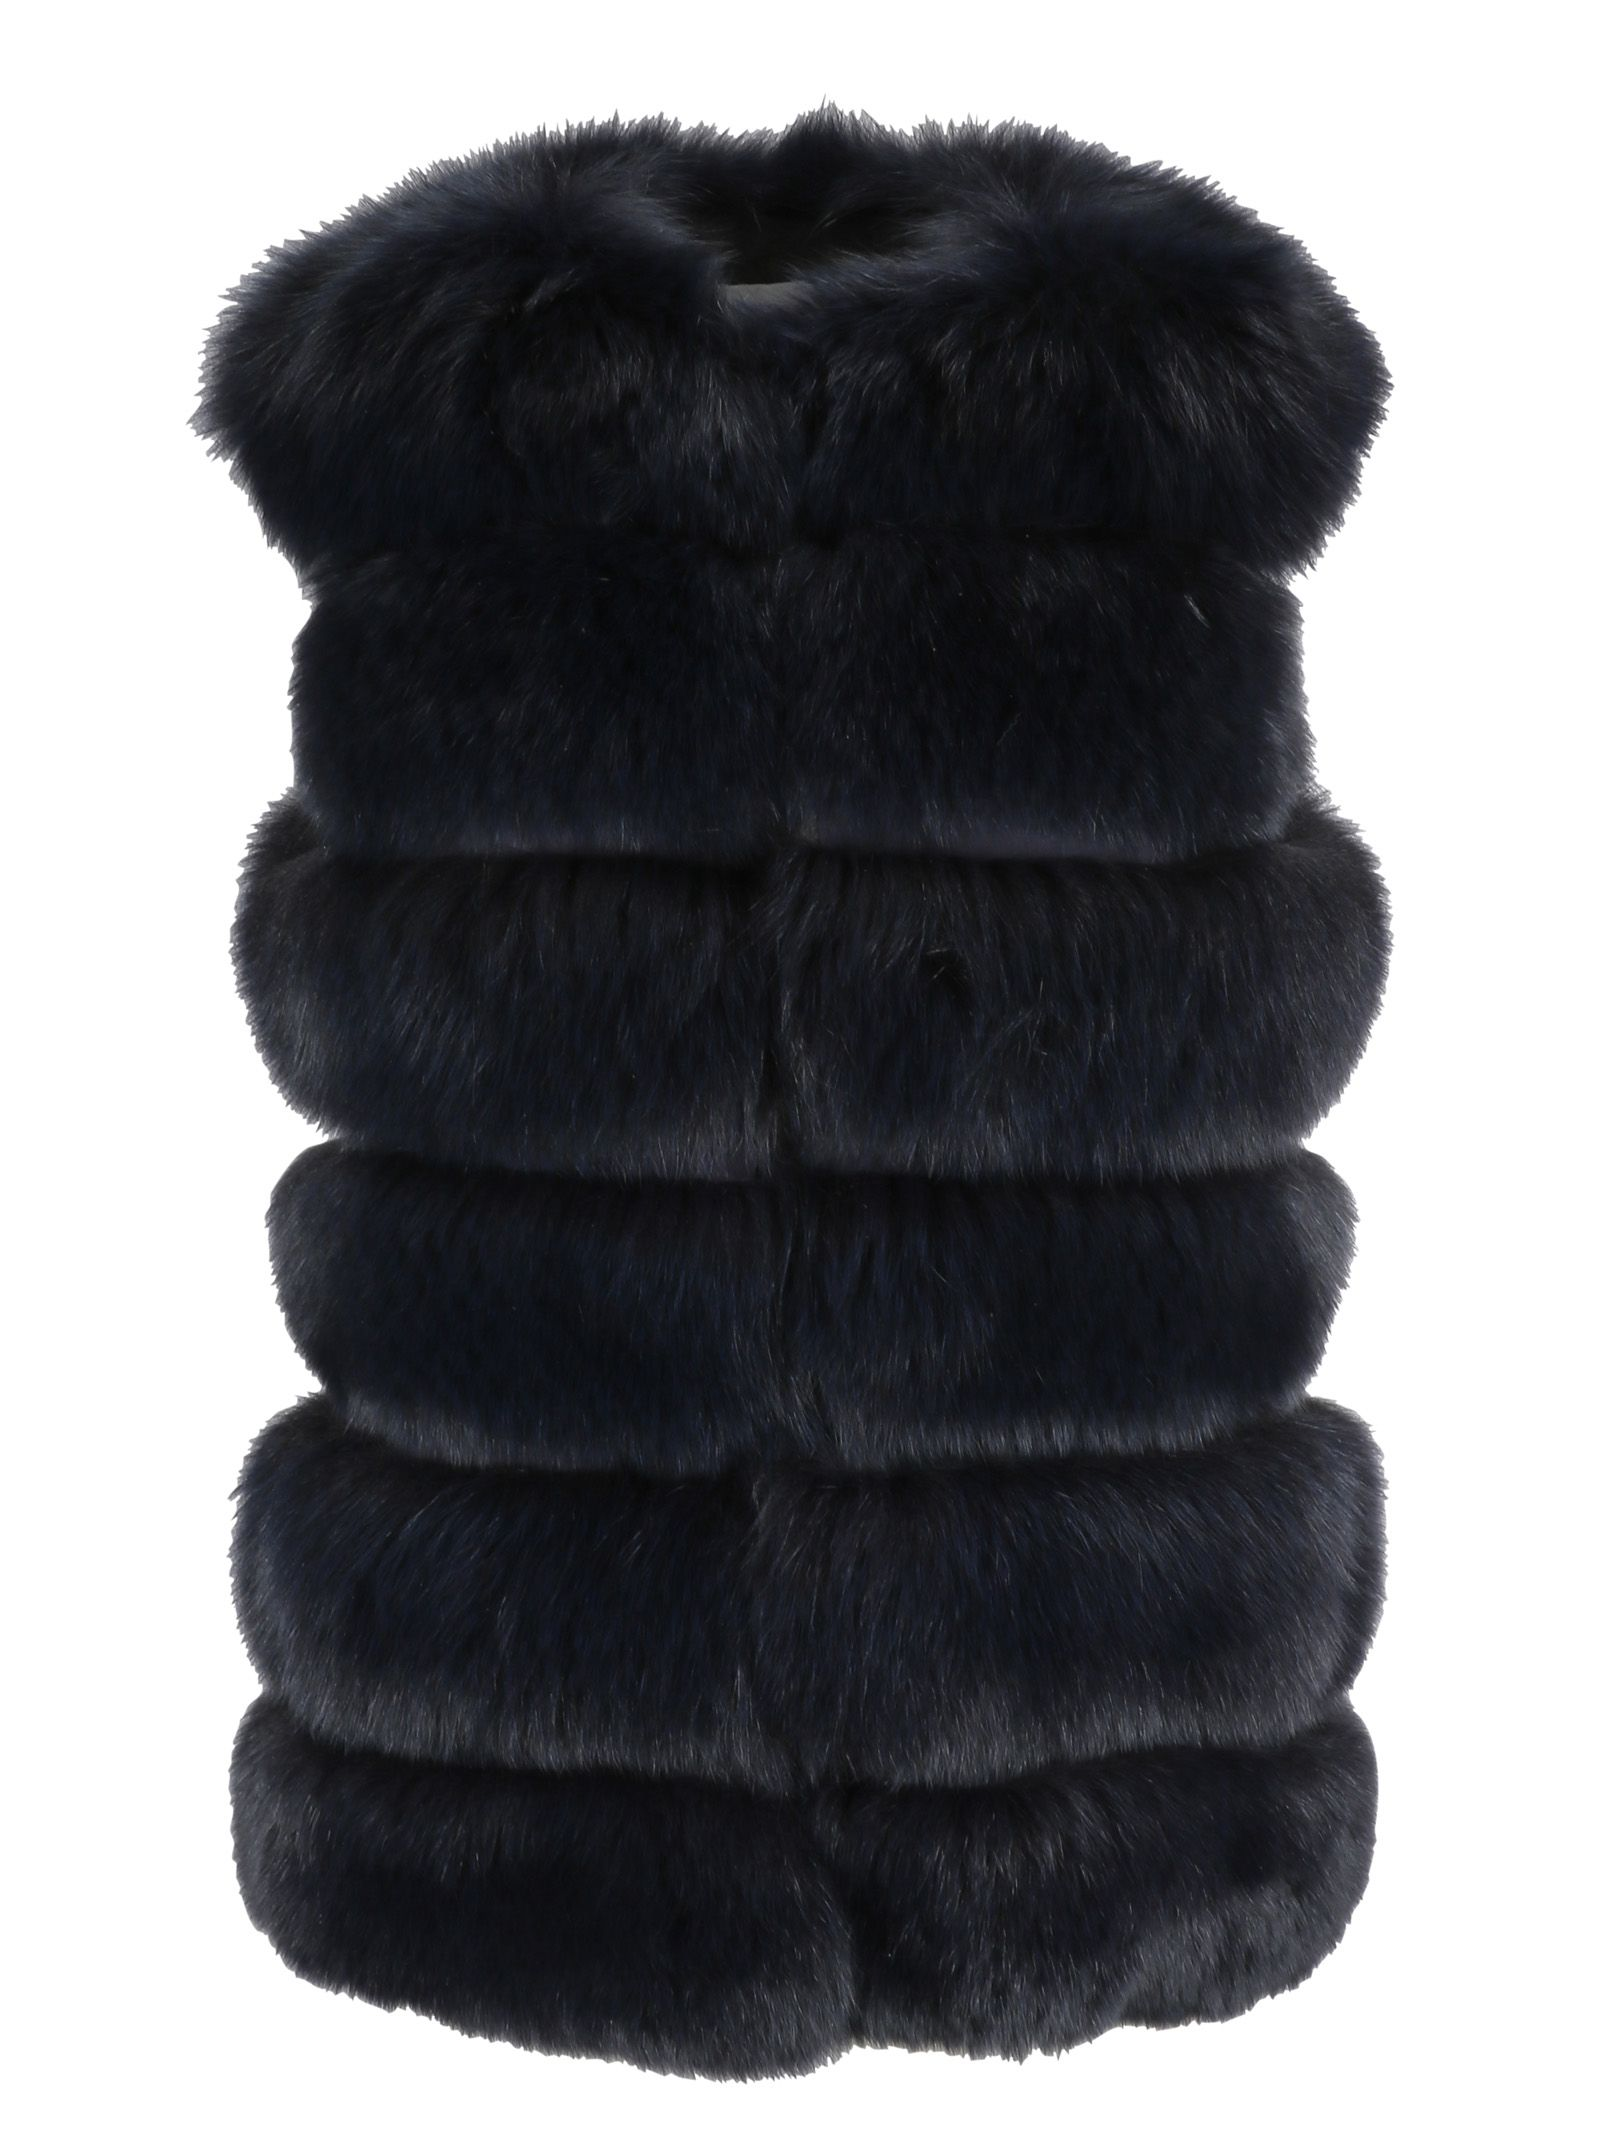 S.W.O.R.D 6.6.44 S.W.O.R.D 6.6.4.4. FURRED PADDED GILET